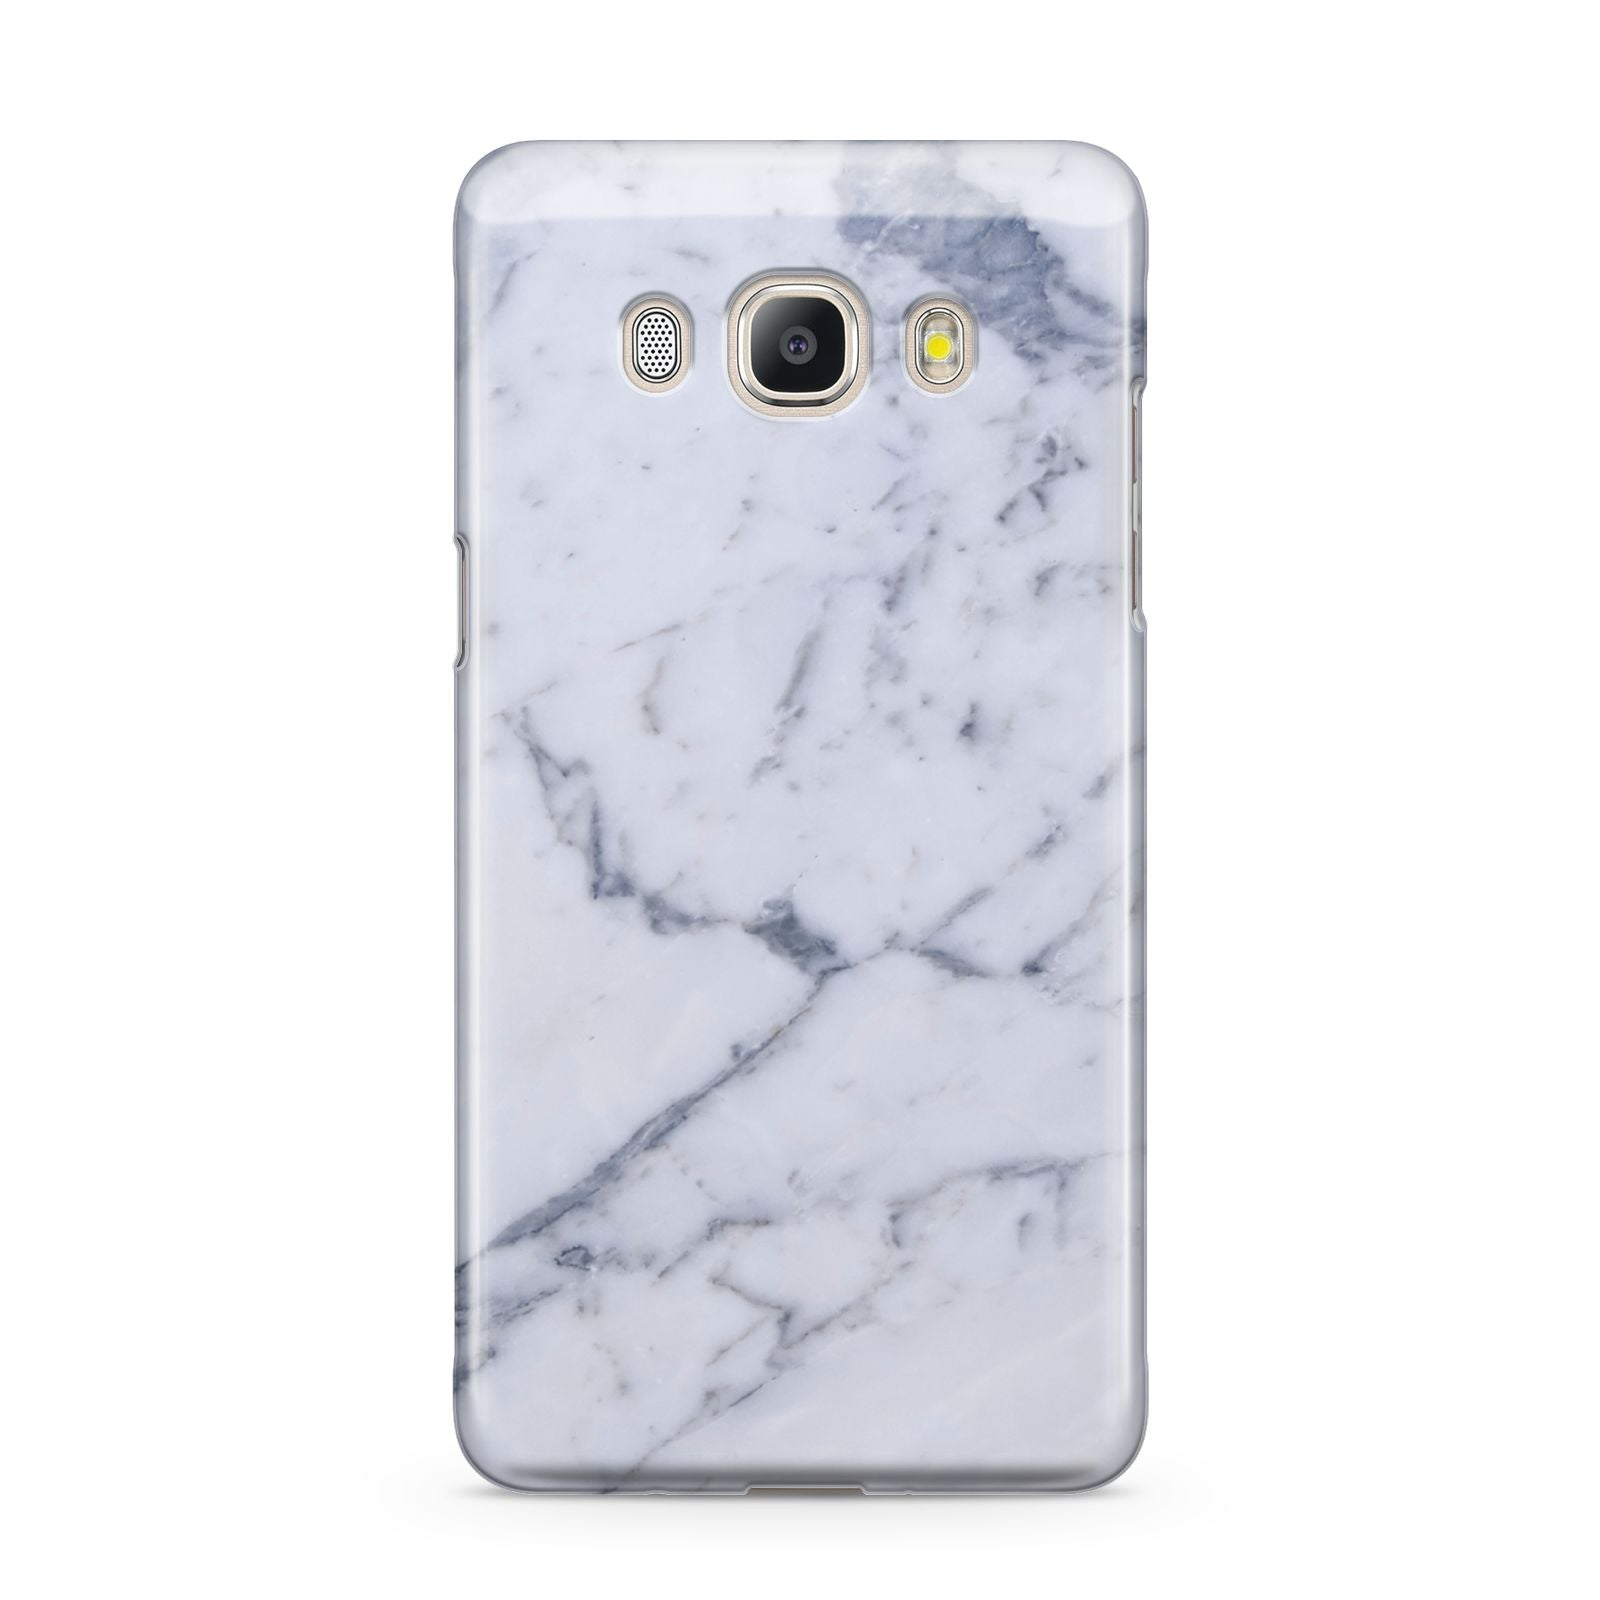 Faux Marble Grey White Samsung Galaxy J5 2016 Case